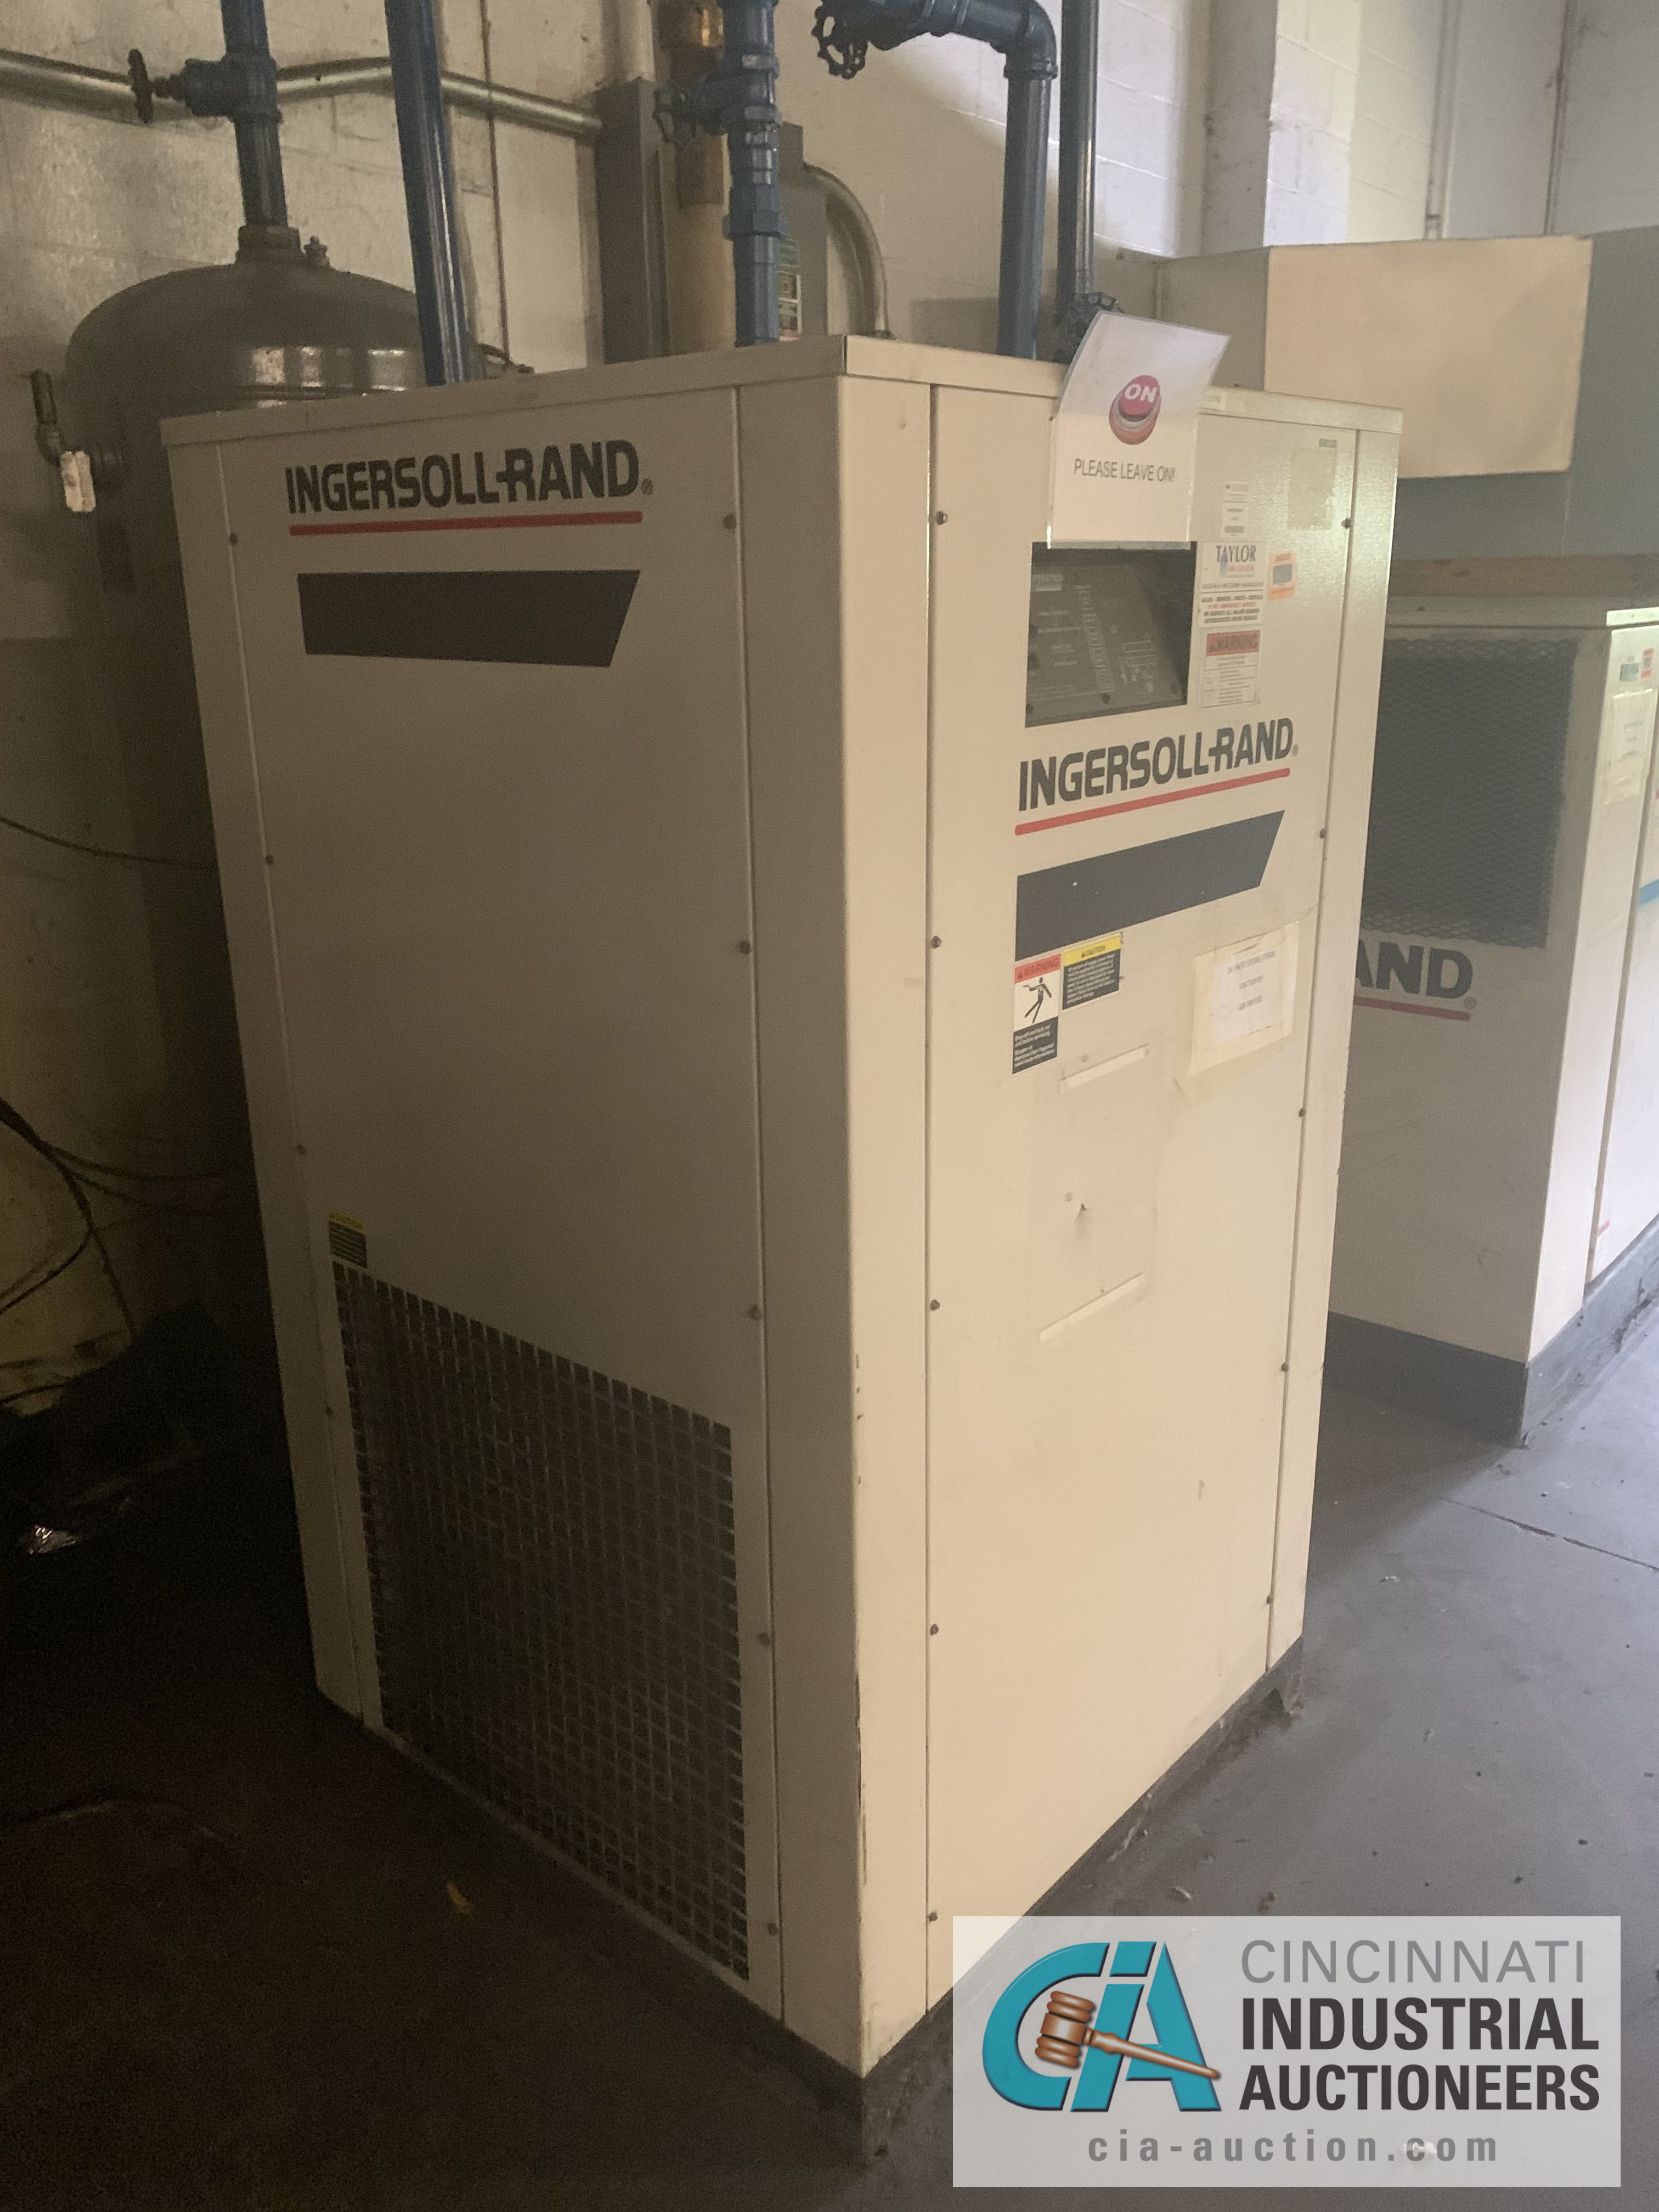 250 PSIG INGERSOLL RAND MODEL DXR425 AIR DRYER - $20.00 Rigging Fee Due to Onsite Rigger - Located